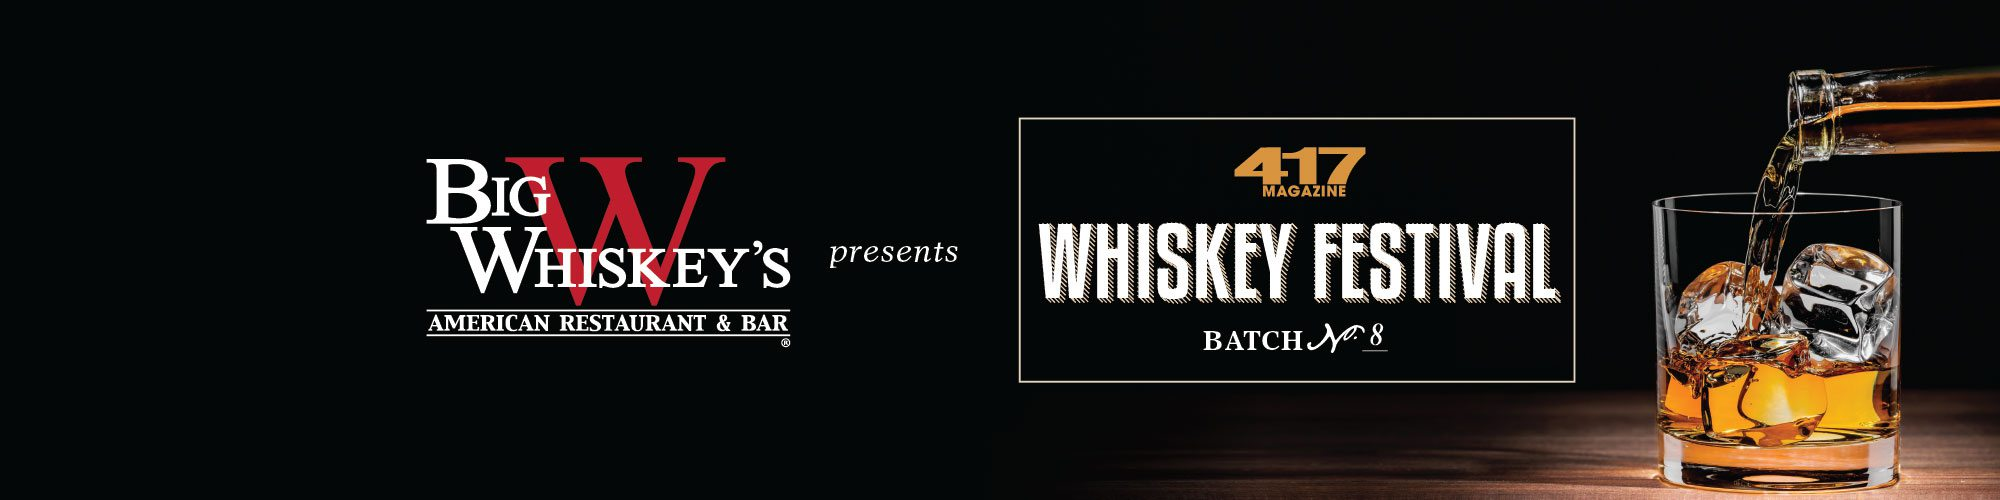 417 Magazine's Whiskey Festival presented by Big Whiskey's American Restaurant & Bar